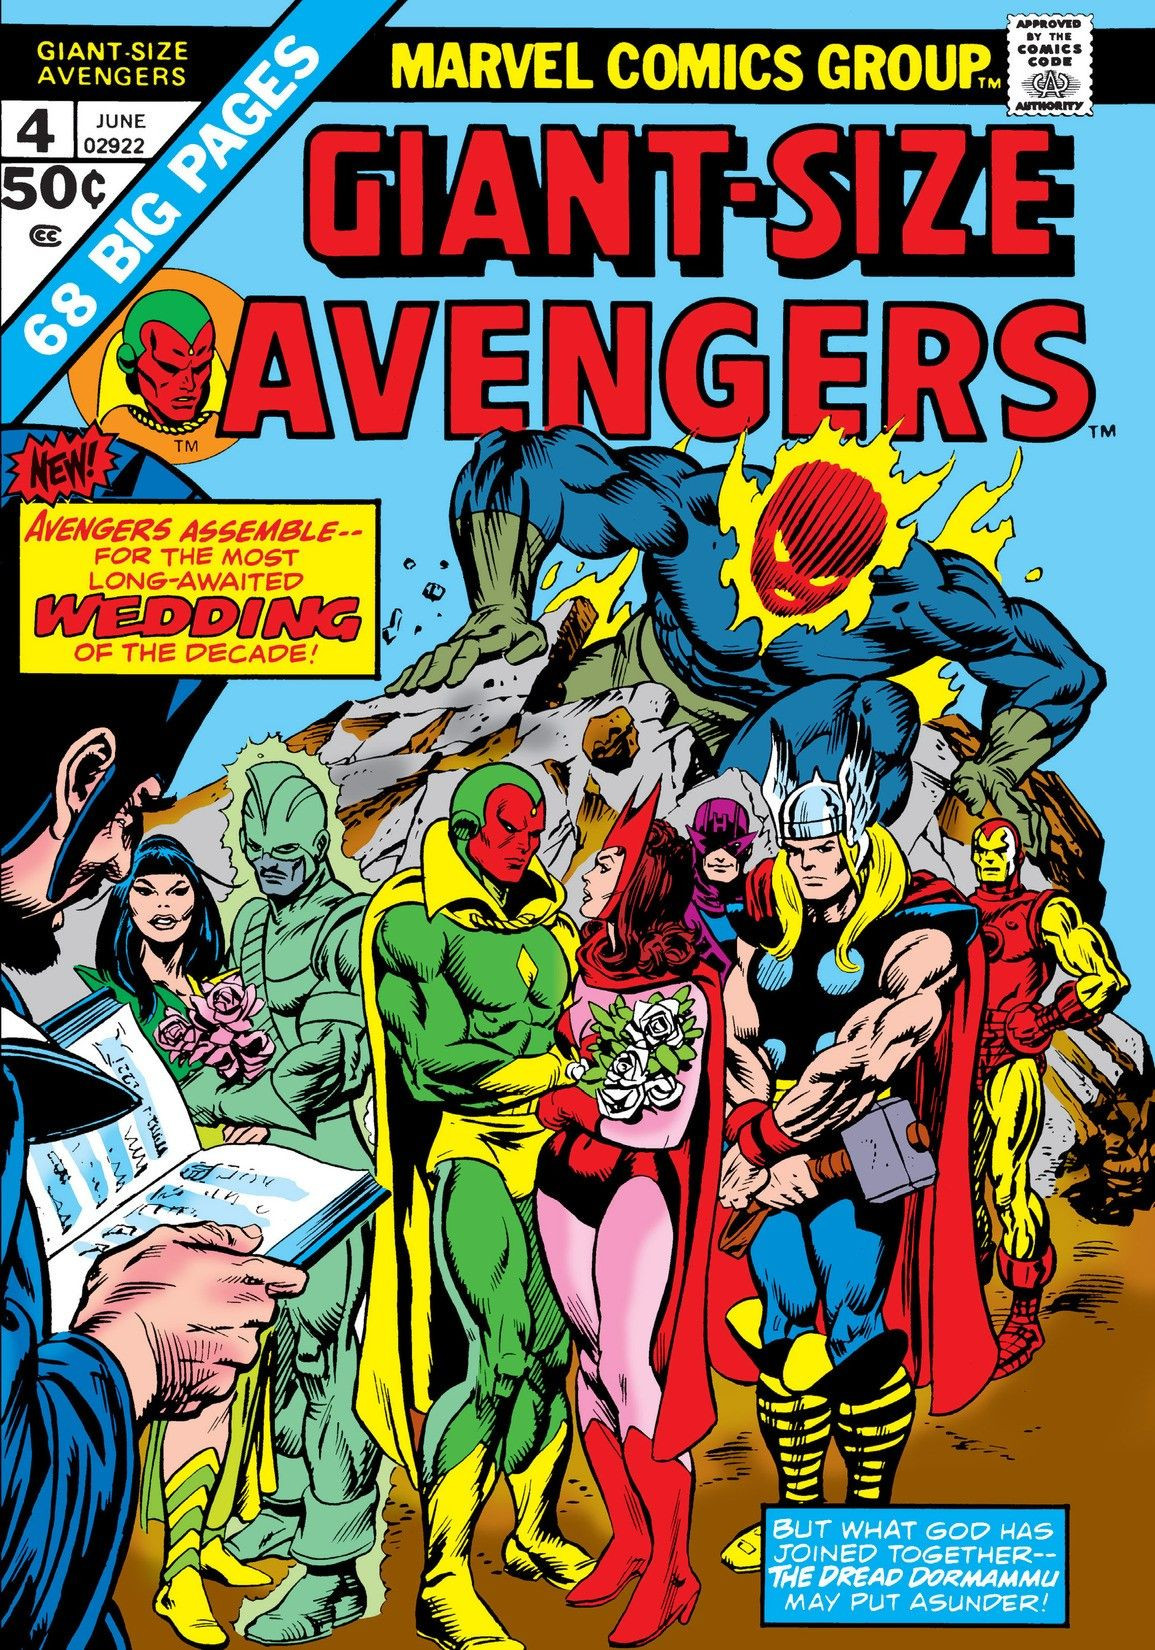 Giant-Size Avengers #4 Get Caught Reading